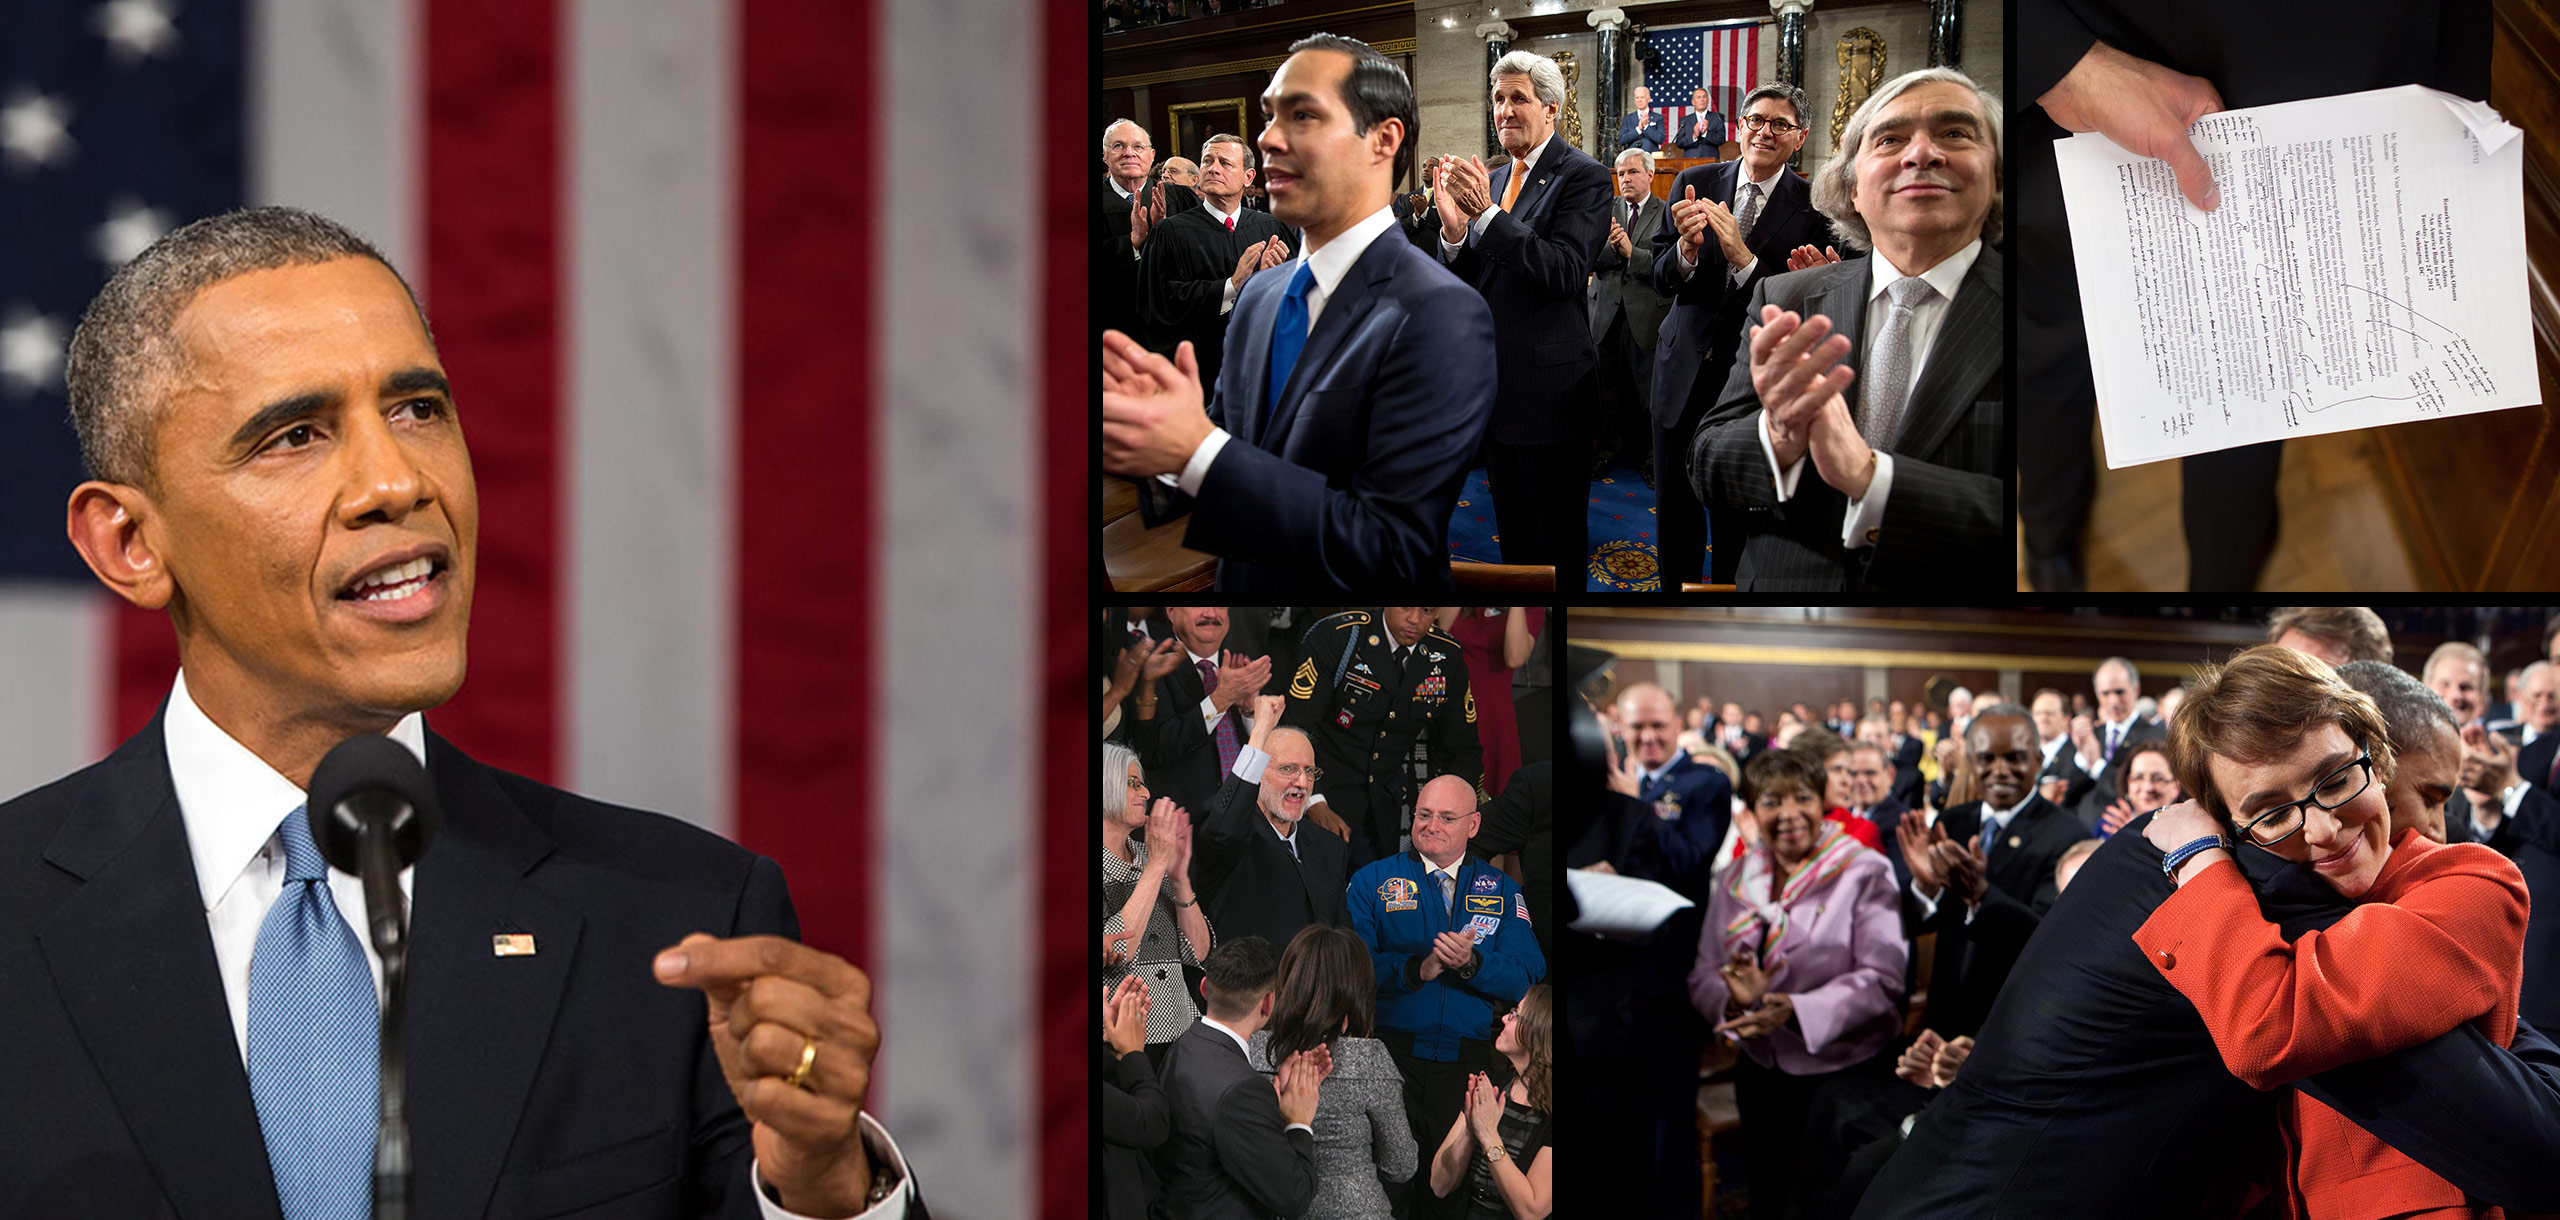 Collage of photos from previous State of the Union Addresses.